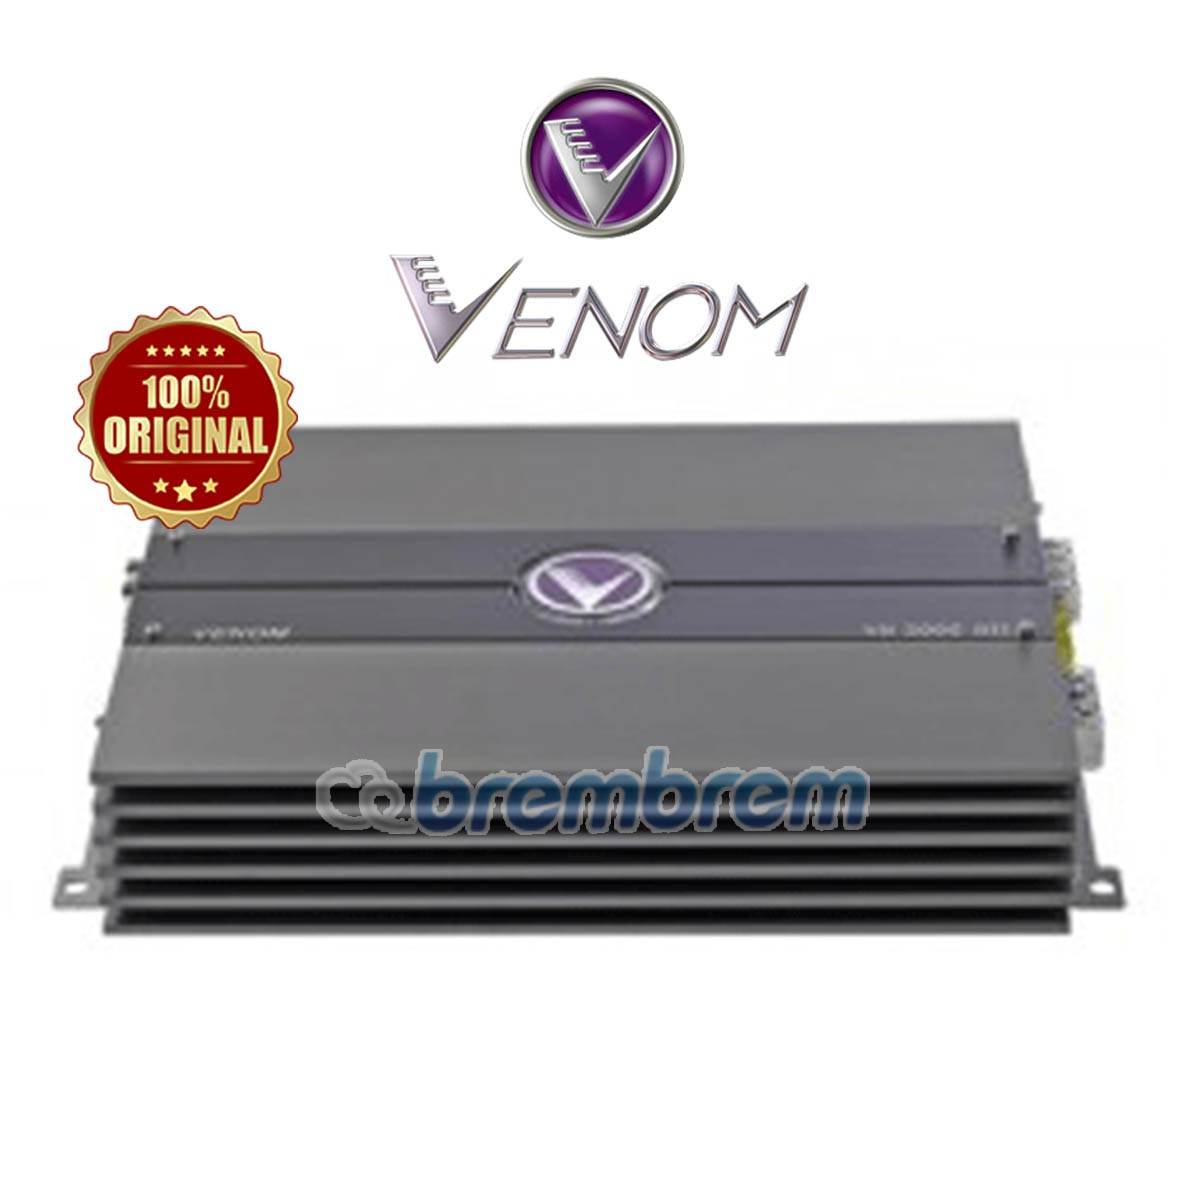 VENOM VERTIGO SERIES VT 600.1 - POWER MONOBLOCK